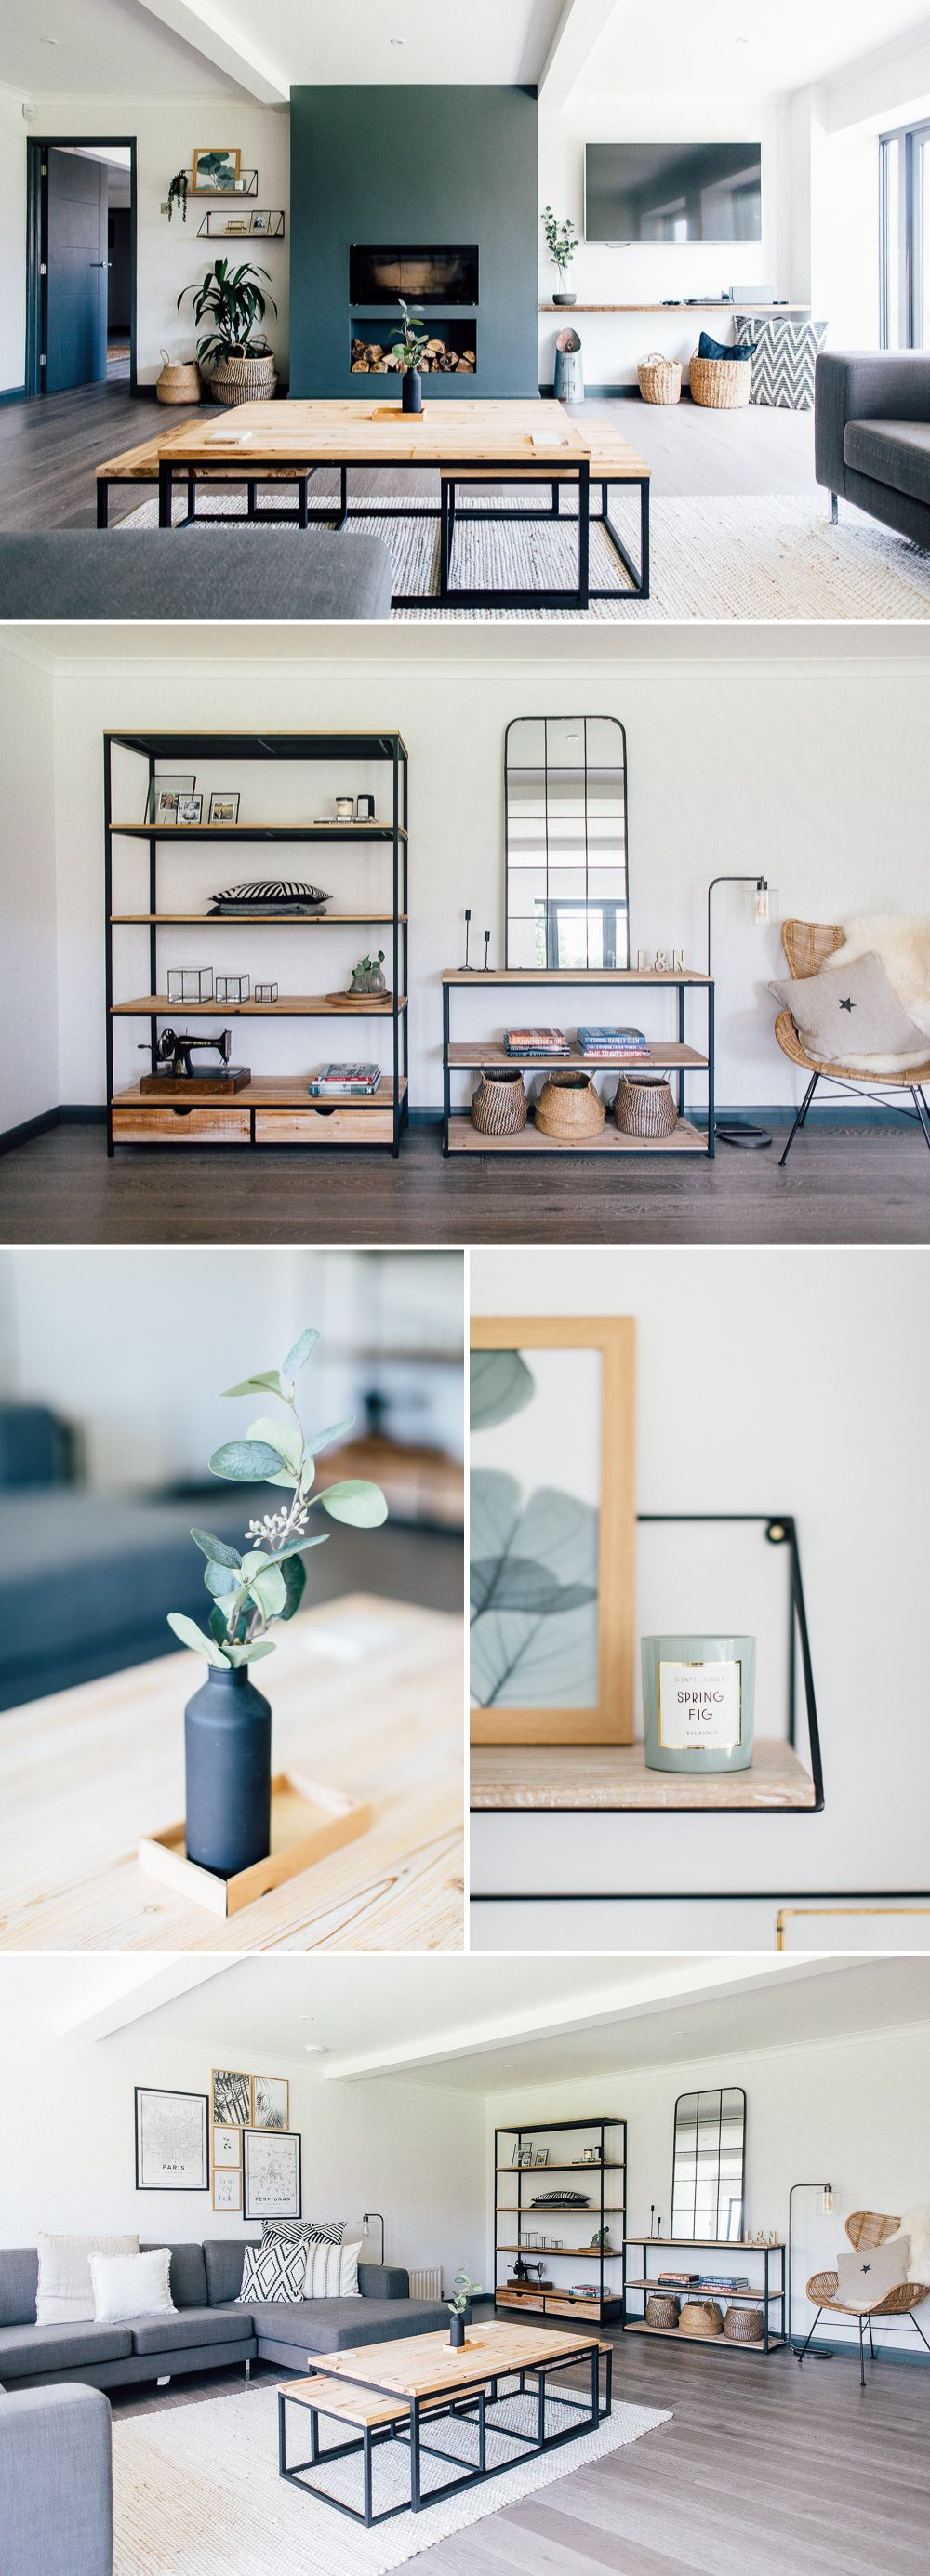 Monochrome Industrial Home Tour {Bungalow Renovation} images